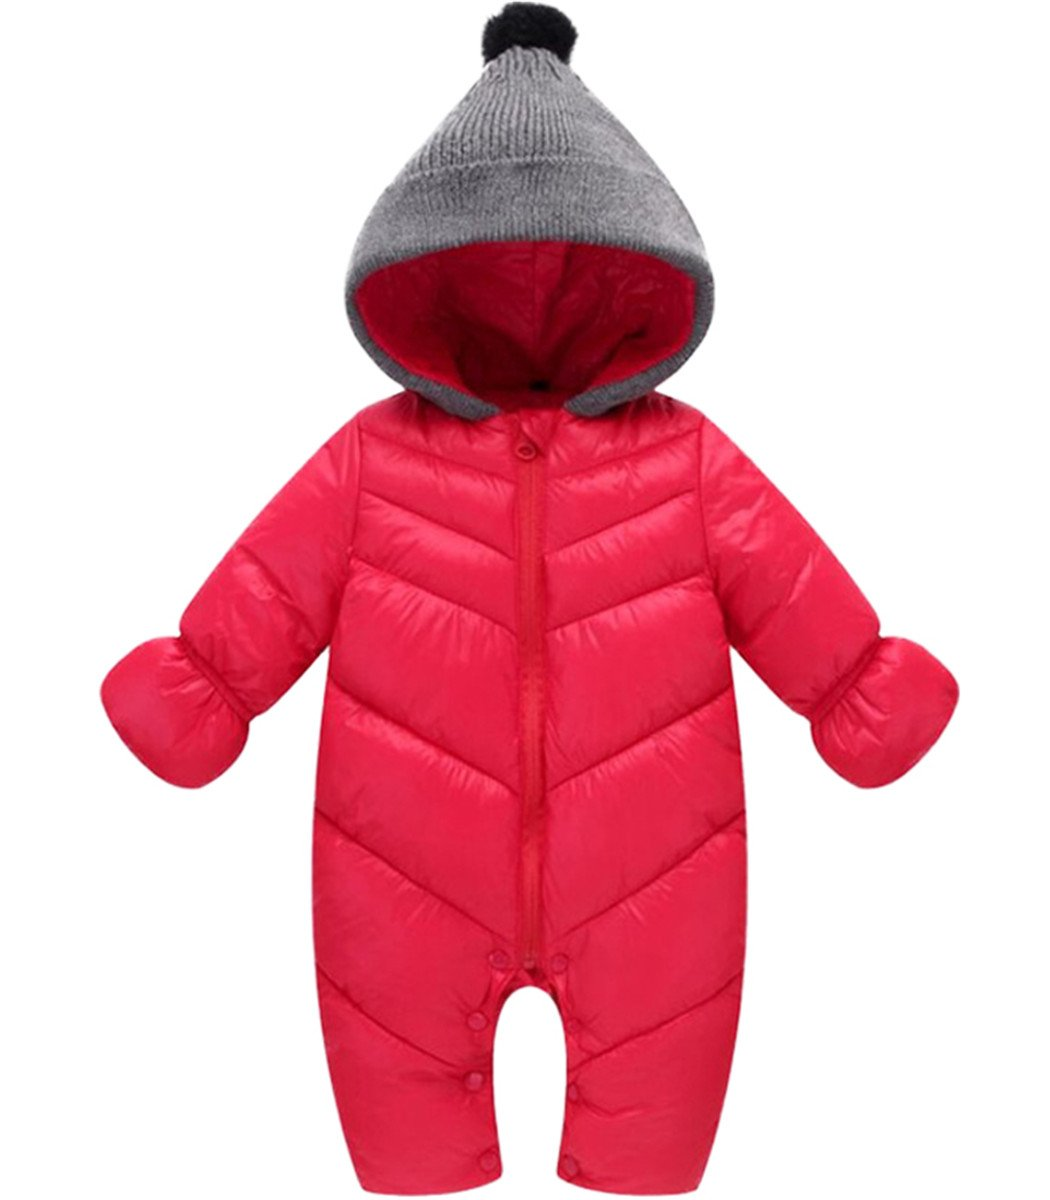 Baby Girls Boys One Piece Front Zippers Button Winter Down Jacket Romper Jumpsuit